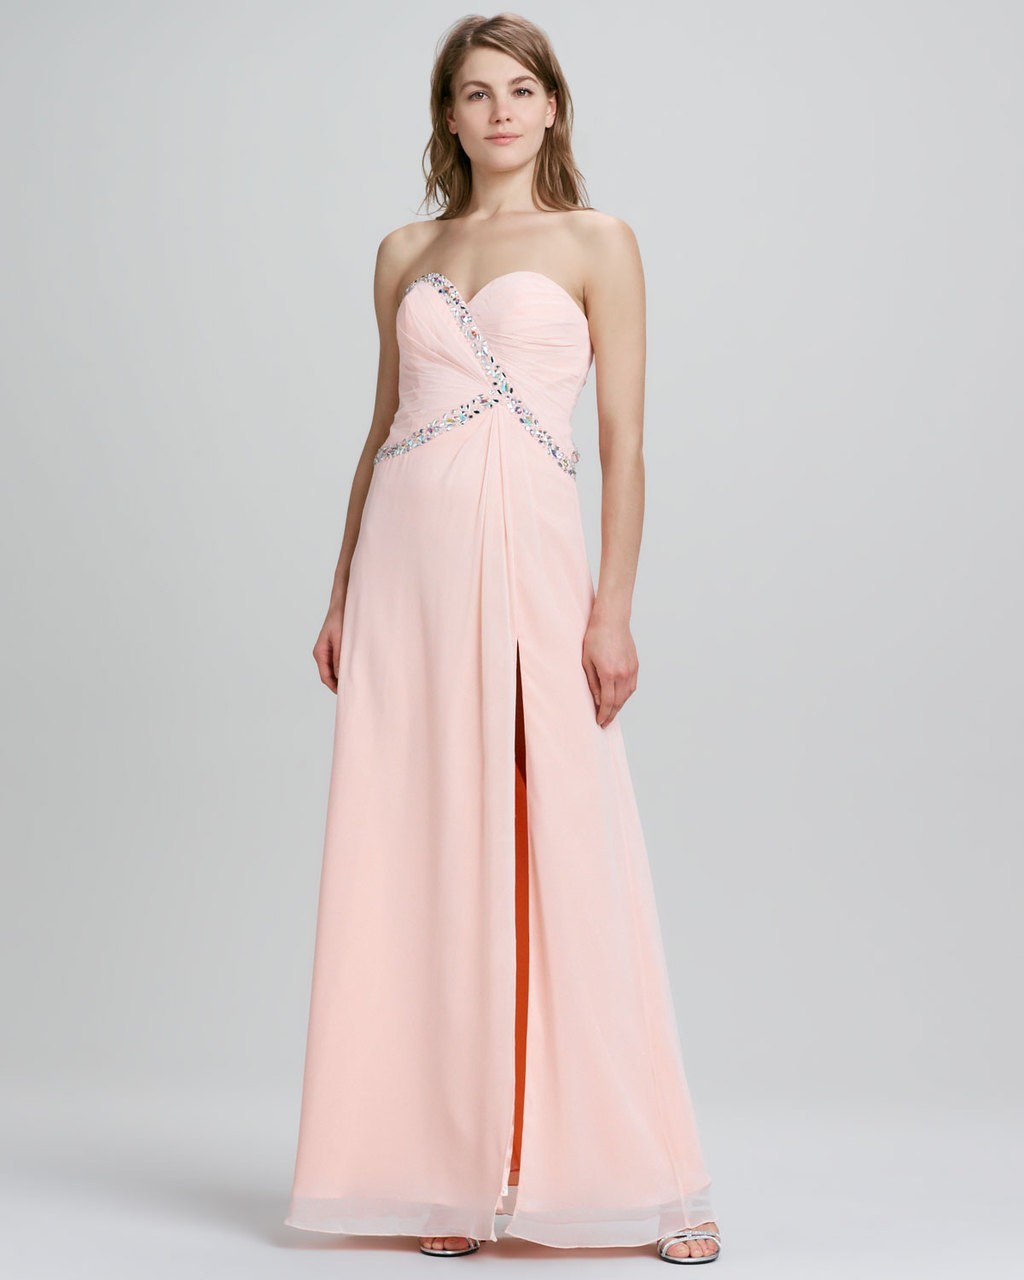 Pastel peach long bridesmaid dress with elegant beading